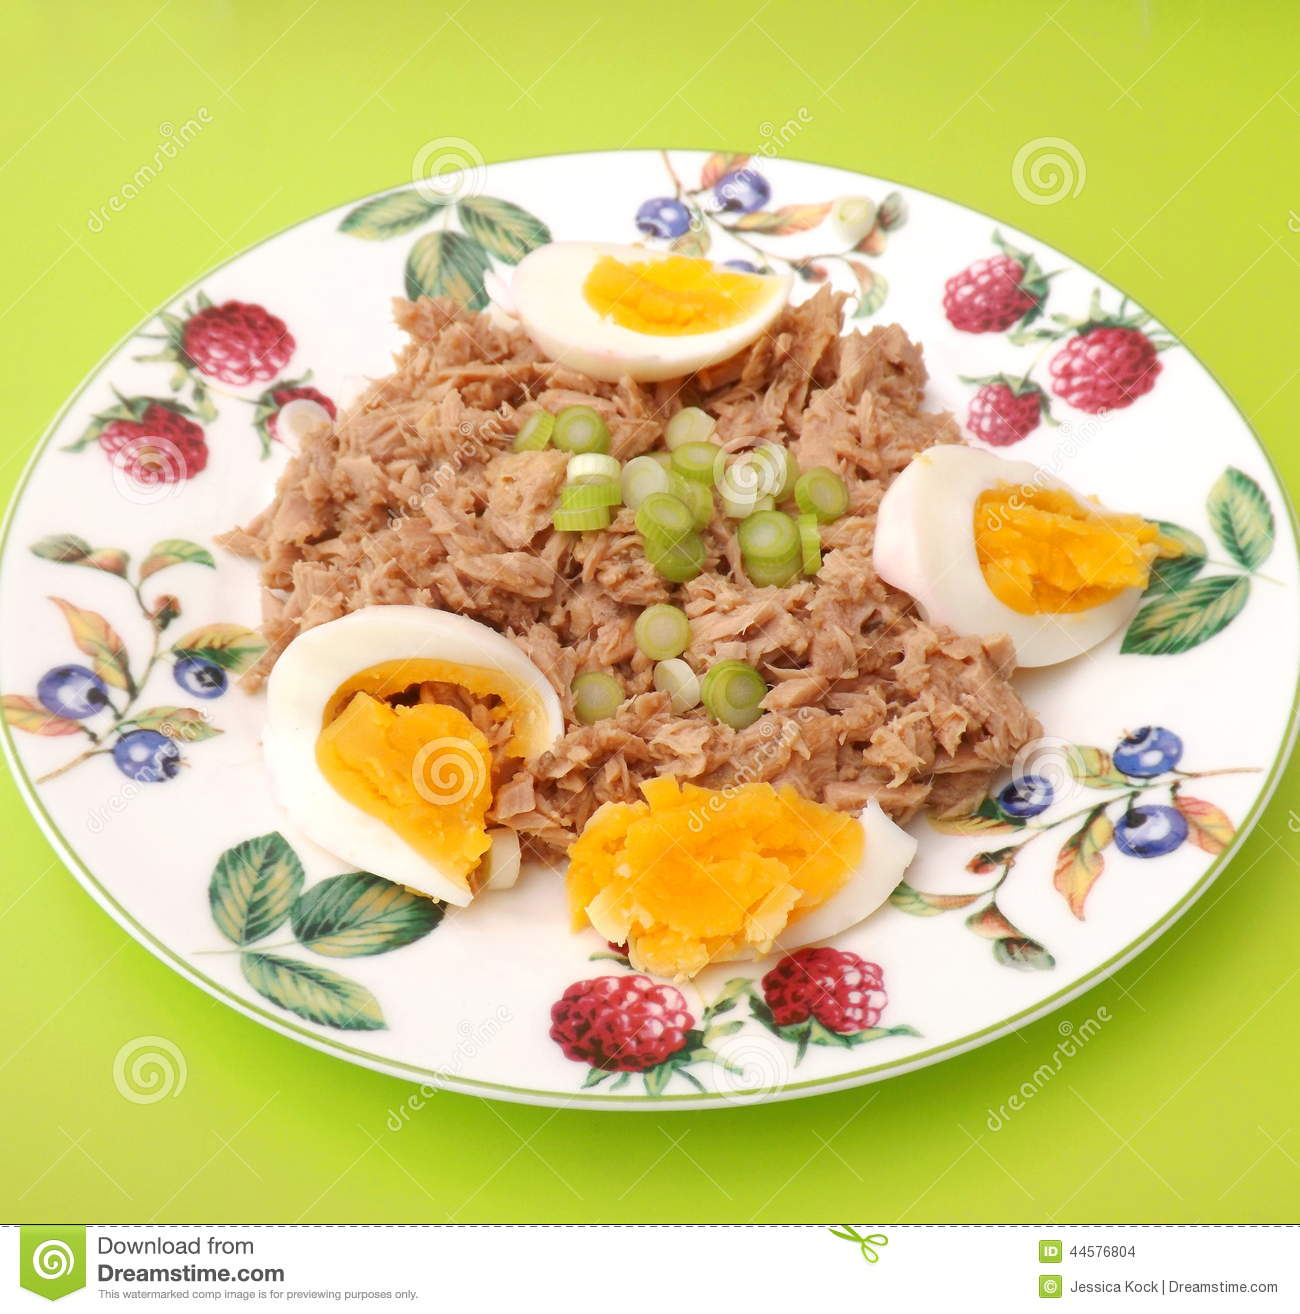 Tuna fish with eggs stock photo image 44576804 for How to make tuna fish with eggs